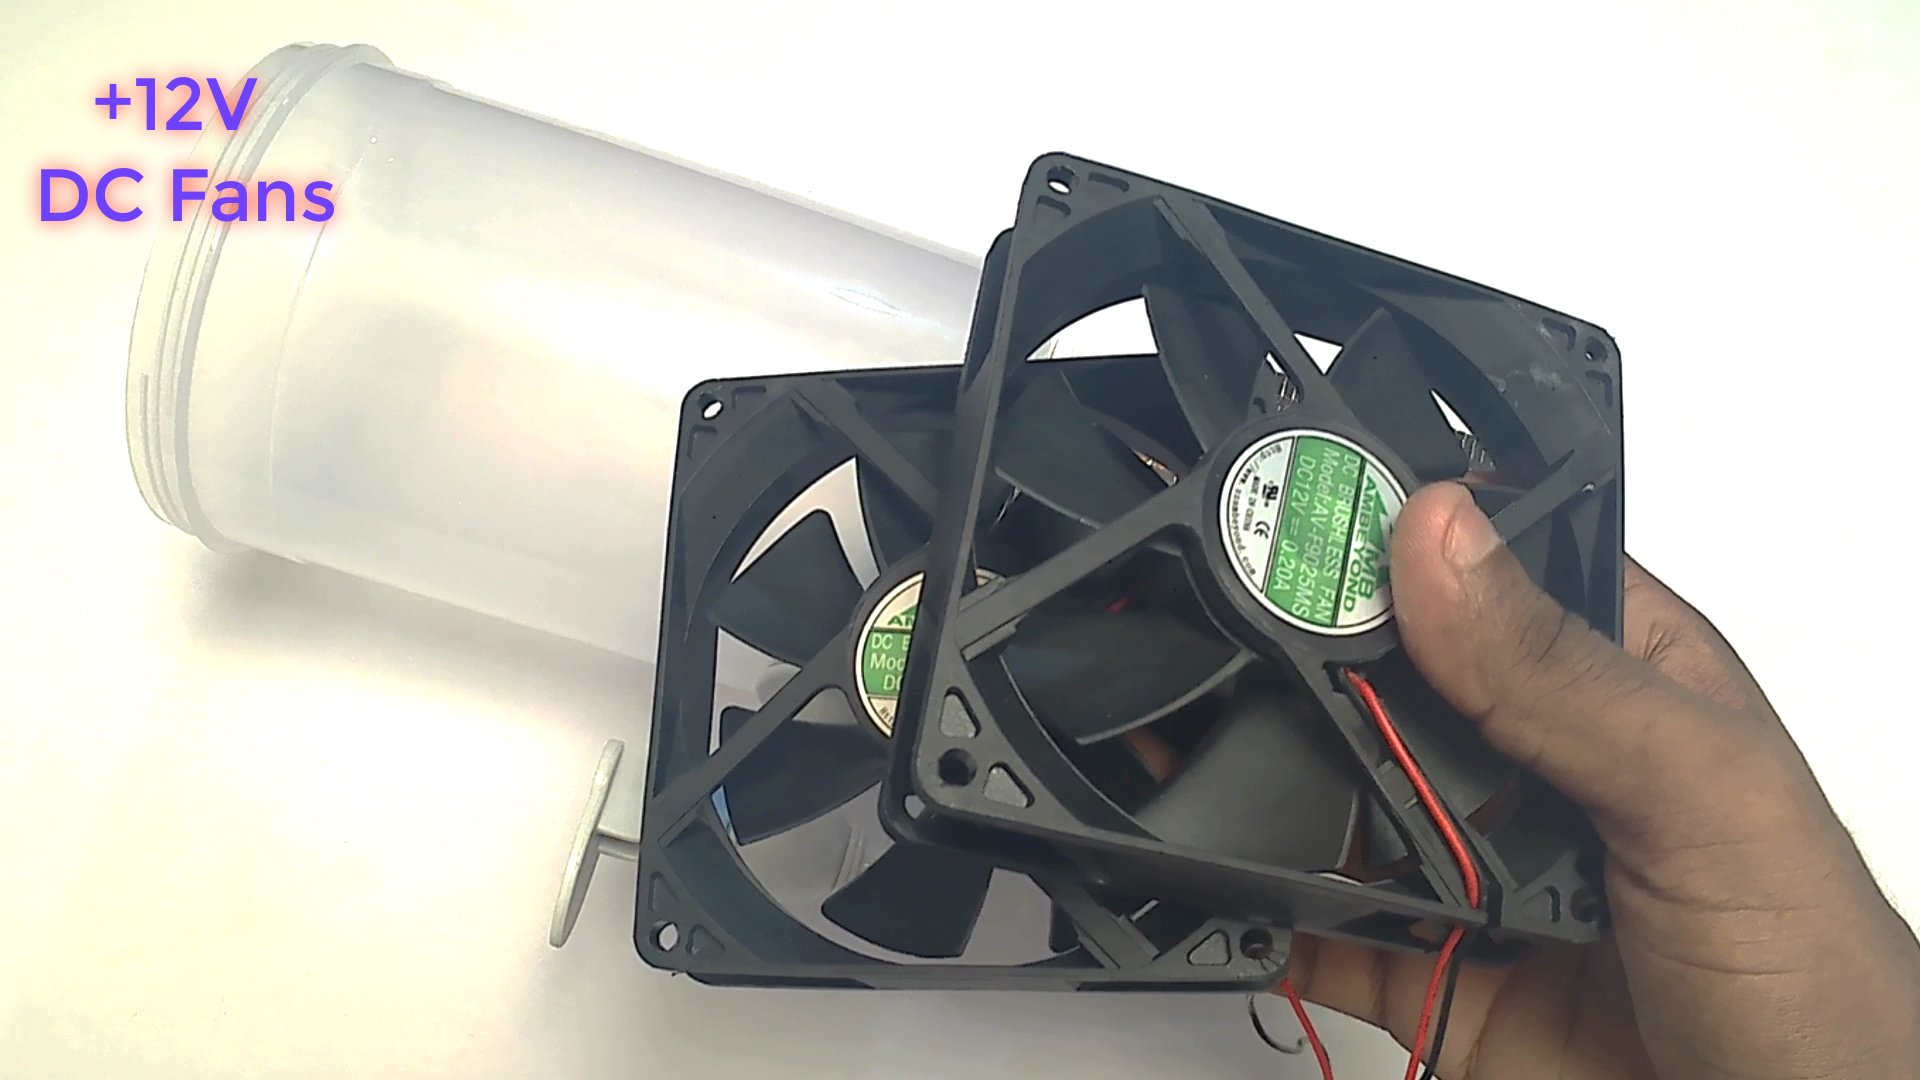 Picture of Fitting the CPU Heat Radiator to Dissipate Heat?